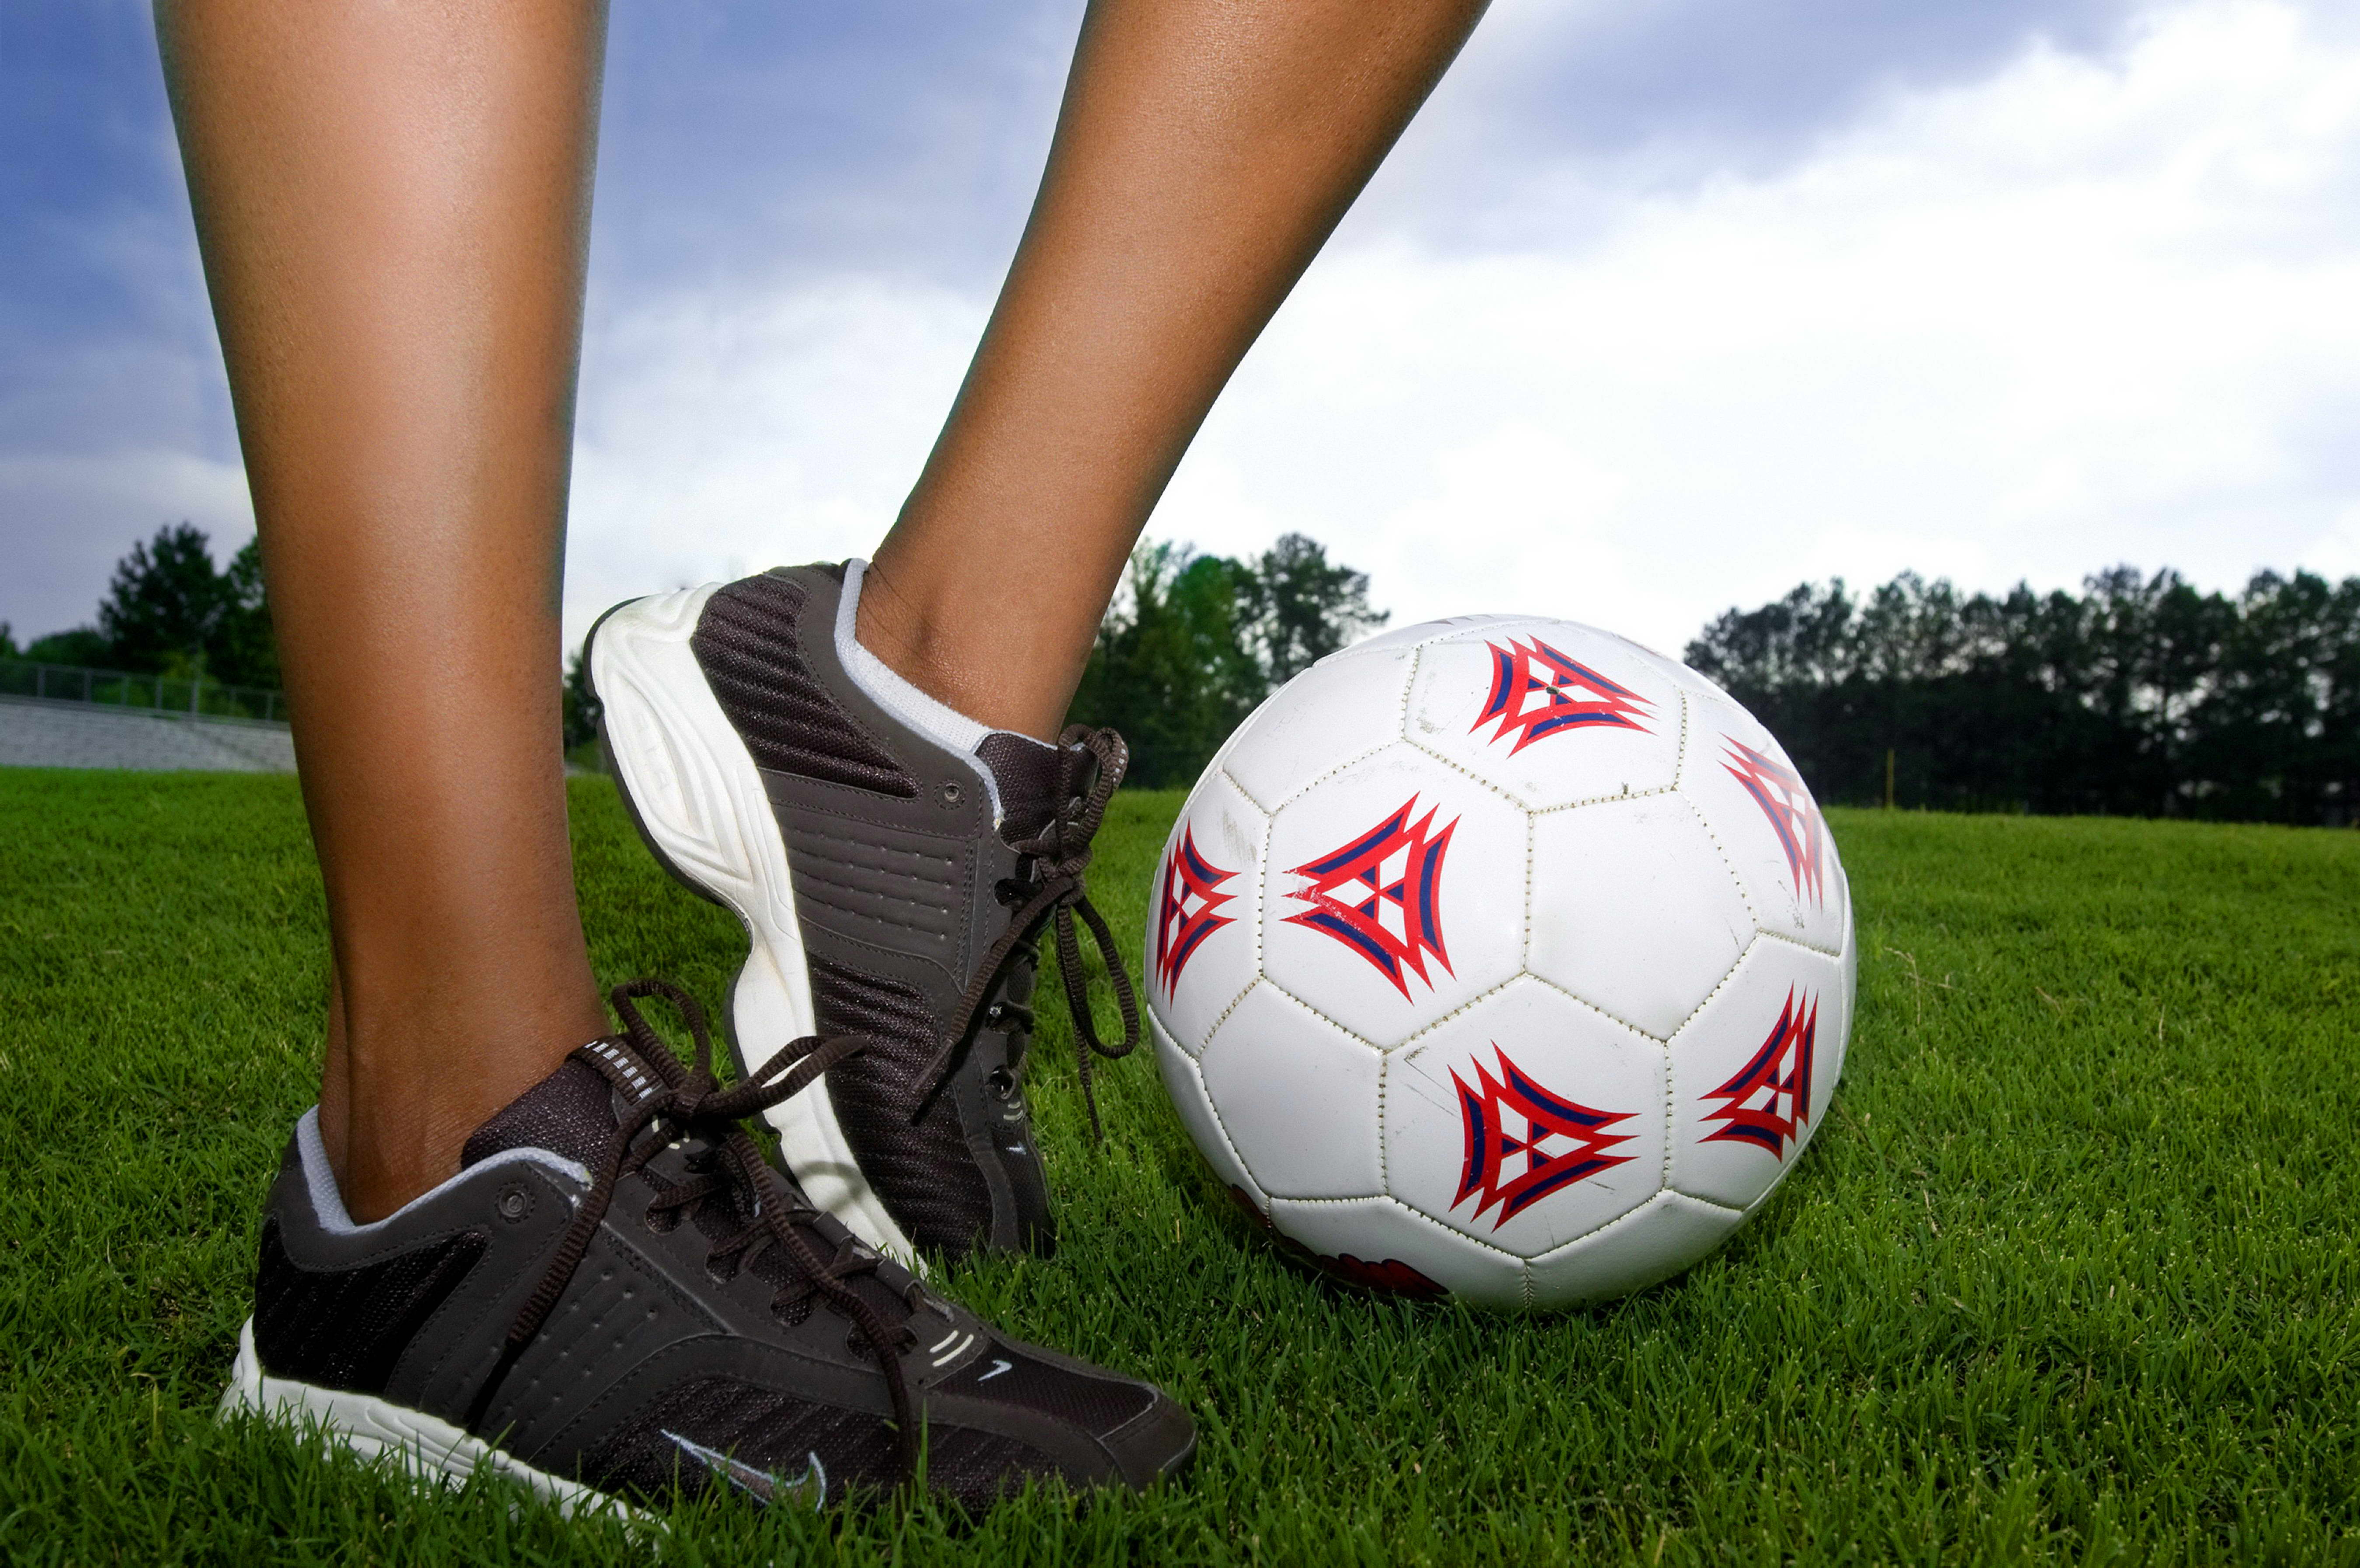 Free picture: young woman, game, soccer